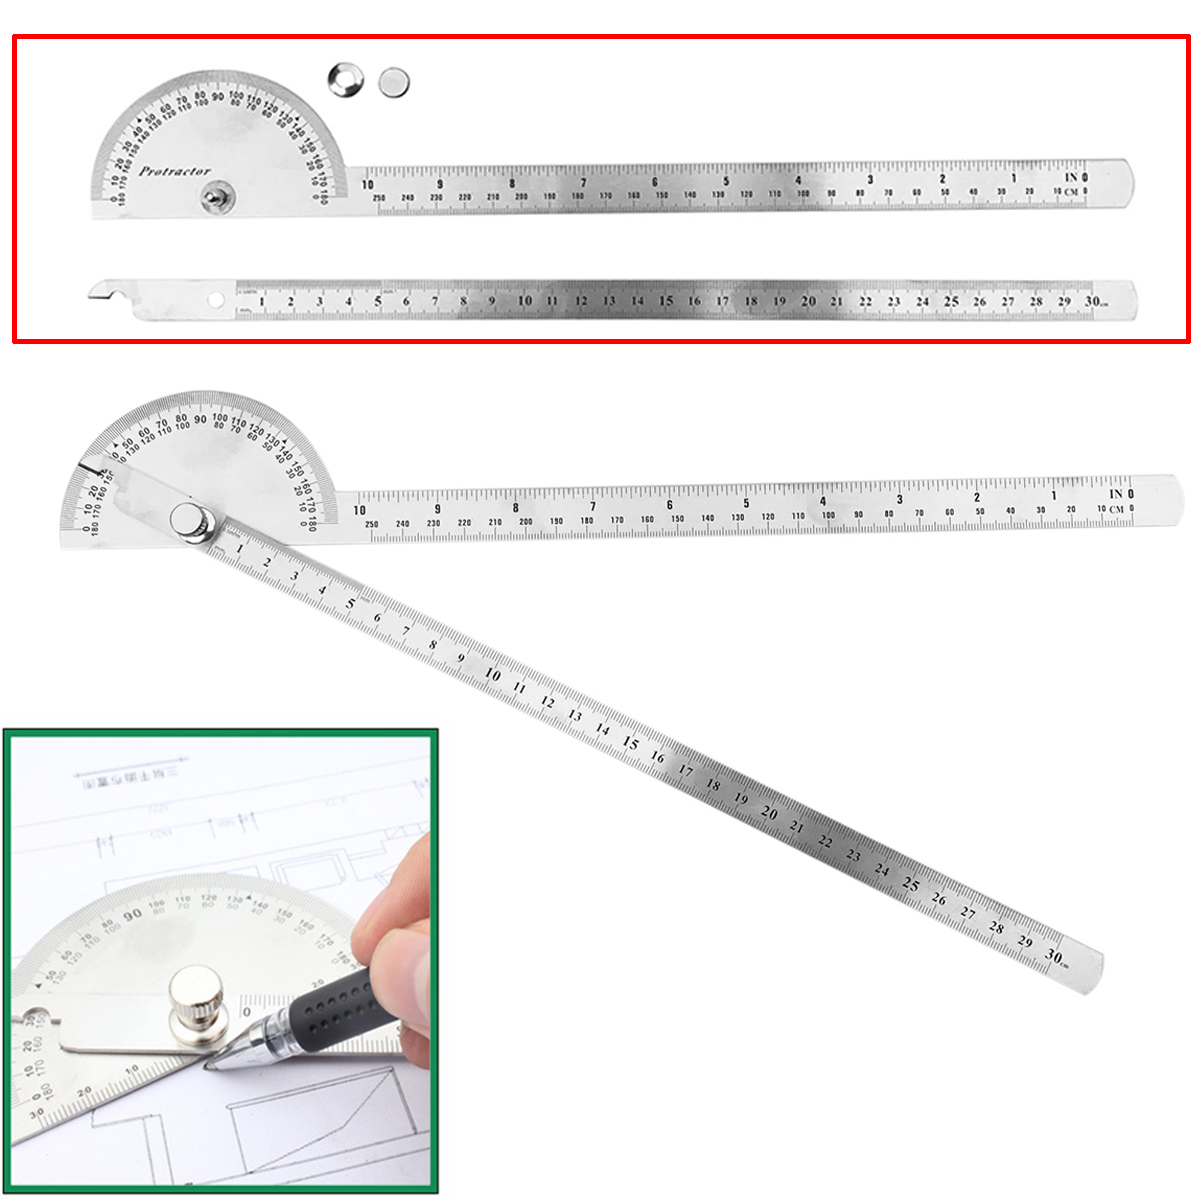 1pc Stainless Steel Angle Ruler 180 degree Protractor Finder Arm Measuring Tool 198 x 53 x 14mm Mayitr kapro multi function rectangular ruler woodworking square 90 degree stainless steel thickened ruler tool